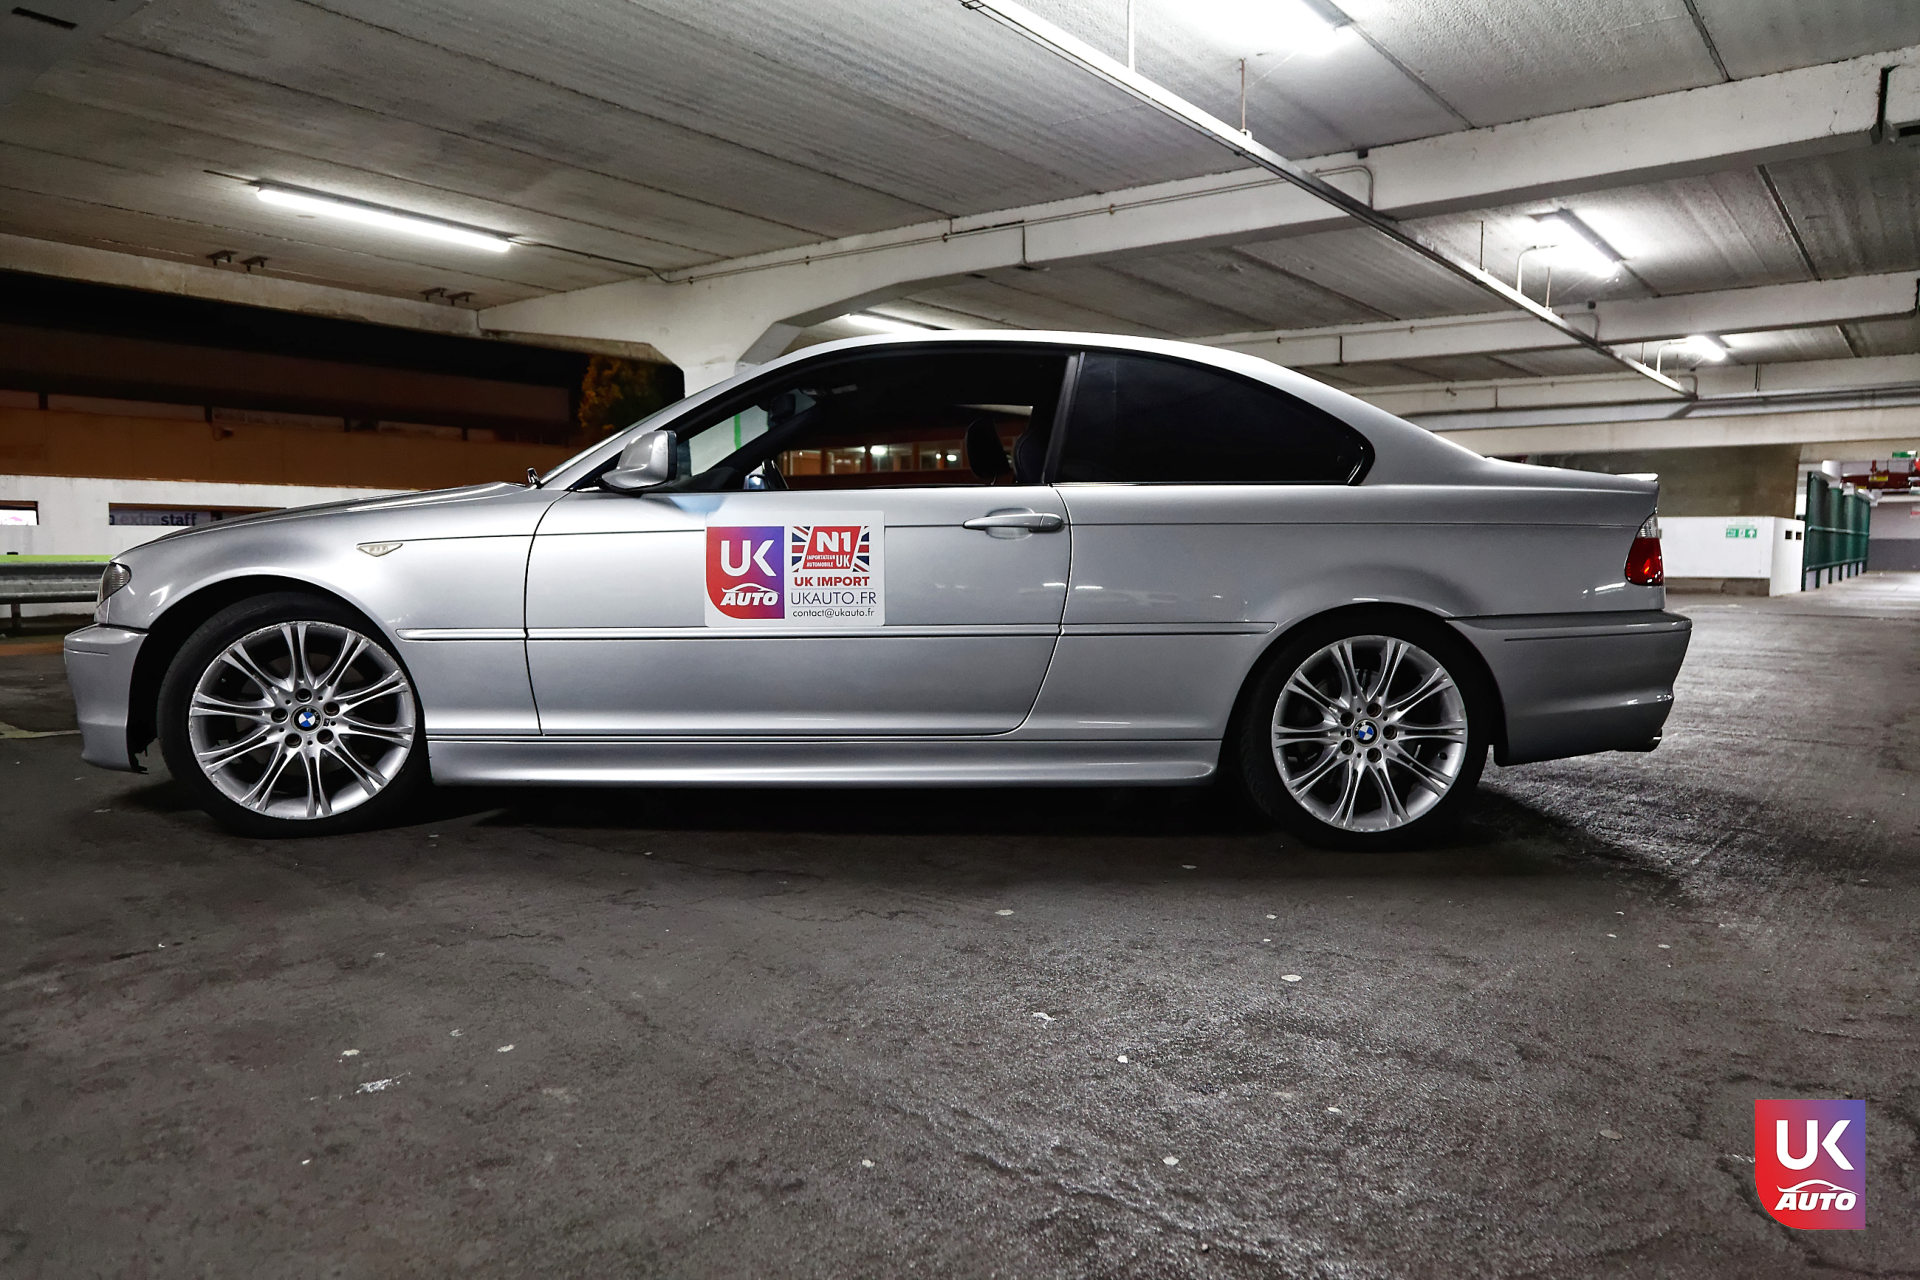 Bmw 330ci e46 import voiture anglaise bmw angleterre ukauto mandataire angleterre bmw 330ci rhd1 DxO - MANDATAIRE BMW IMPORT BMW 330CI PAR UKAUTO IMPORT BMW ANGLETERRE PAS CHER FELICITATION A THIBAUT